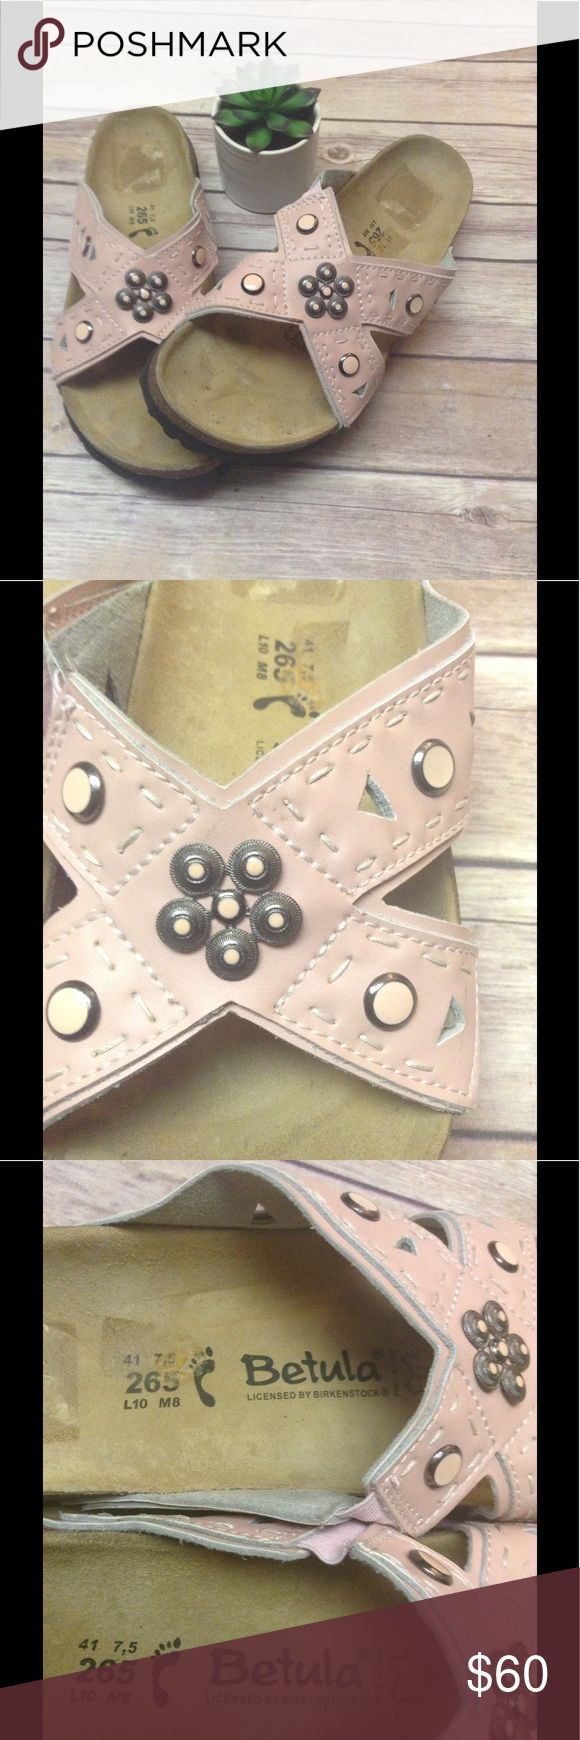 Birkenstock Betula sandals Almost new, light pink, bead and crystal embellished sandals. Birkenstock Shoes Sandals